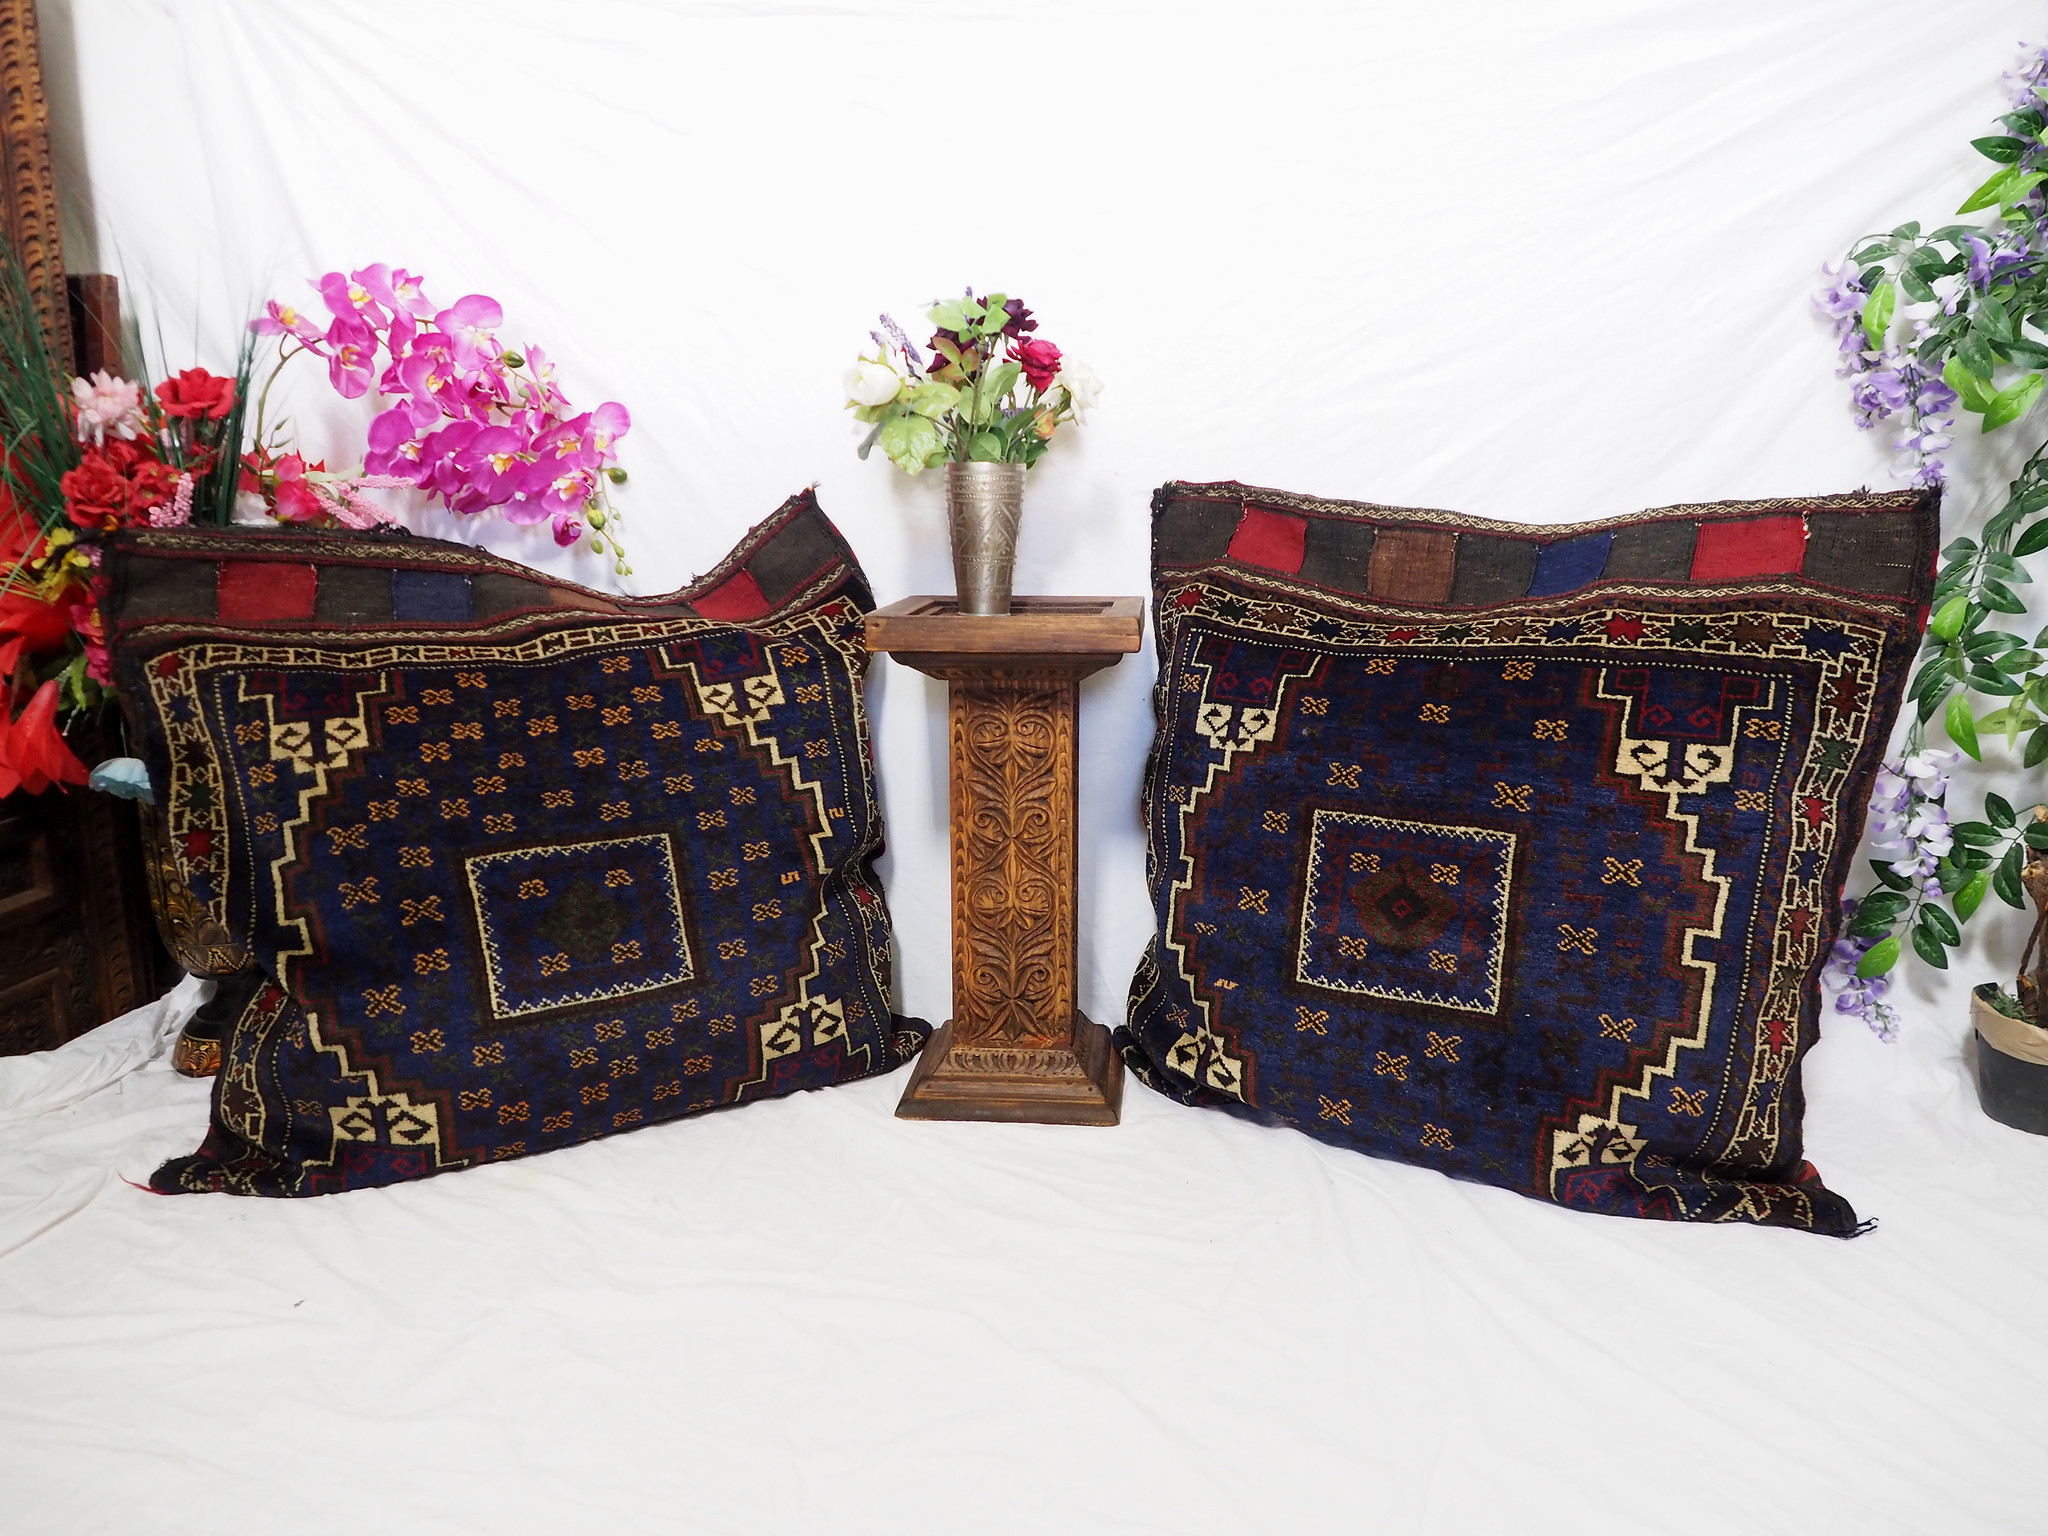 antique very rare Balochi nomadic carpet cushion orient nomad rug seat Bohemian Afghanistan pillow 21/7